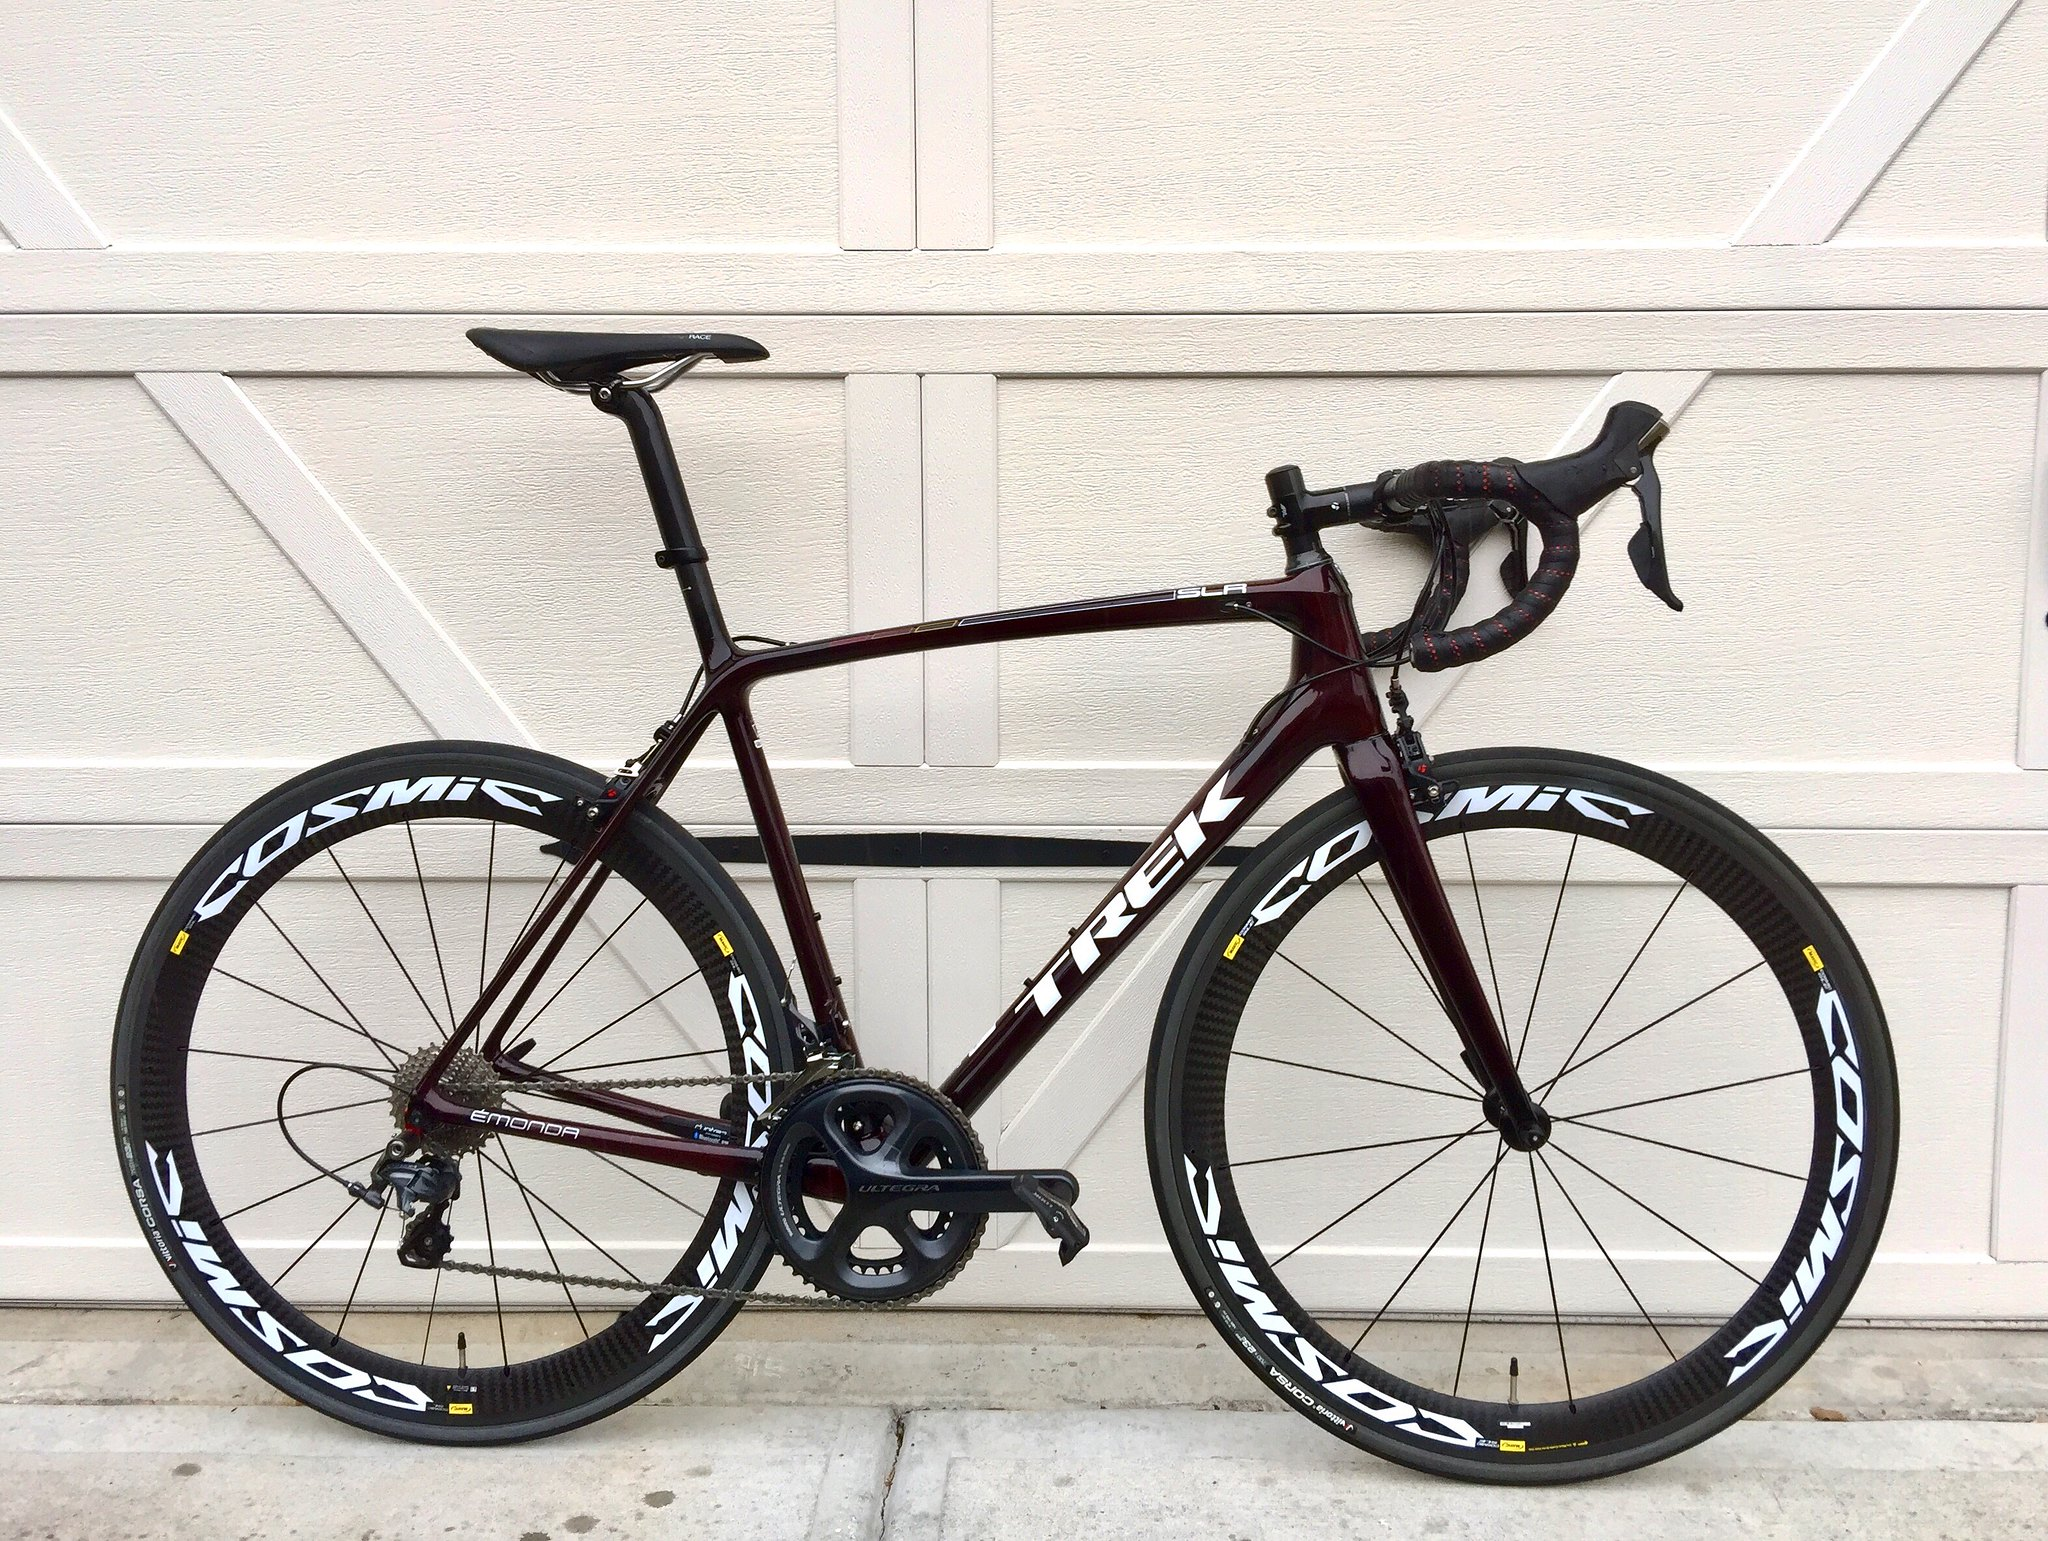 abd0a4f28fb Trek Emonda Pictures. Let's See Them! - Page 22 - Bike Forums